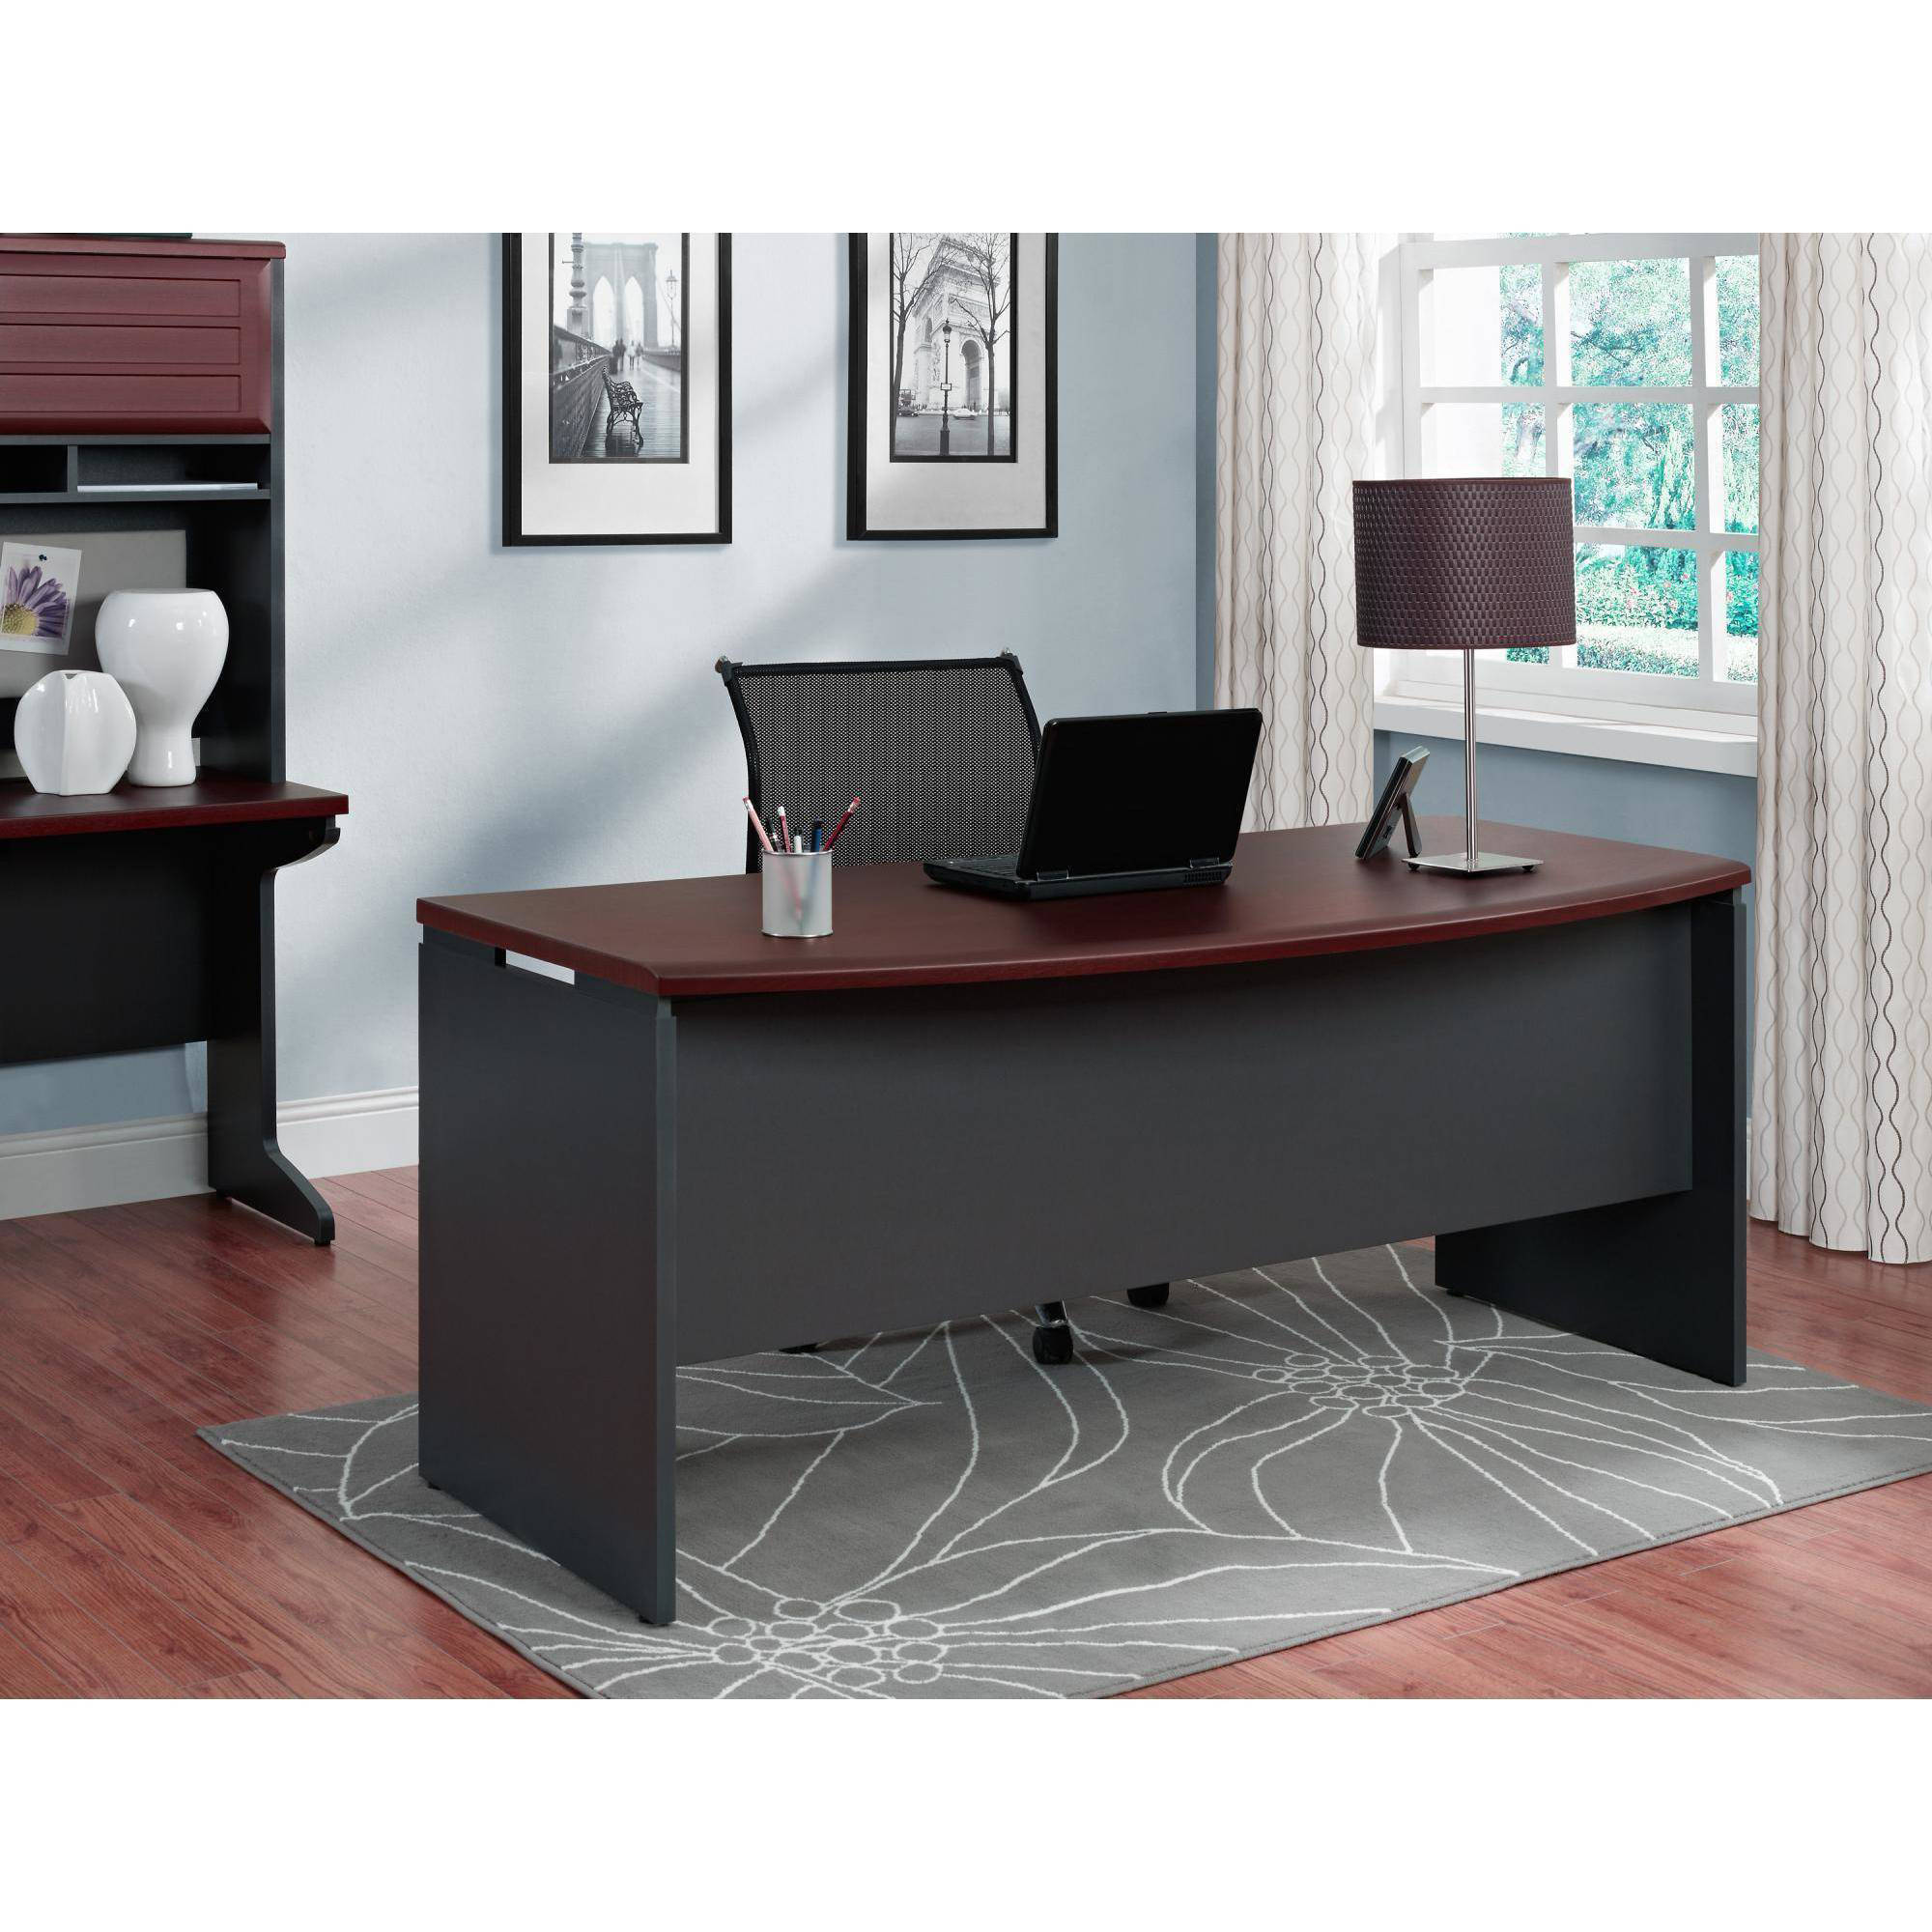 Picture 1 of 6. Computer Desk Home Office Furniture Workstation Table Executive